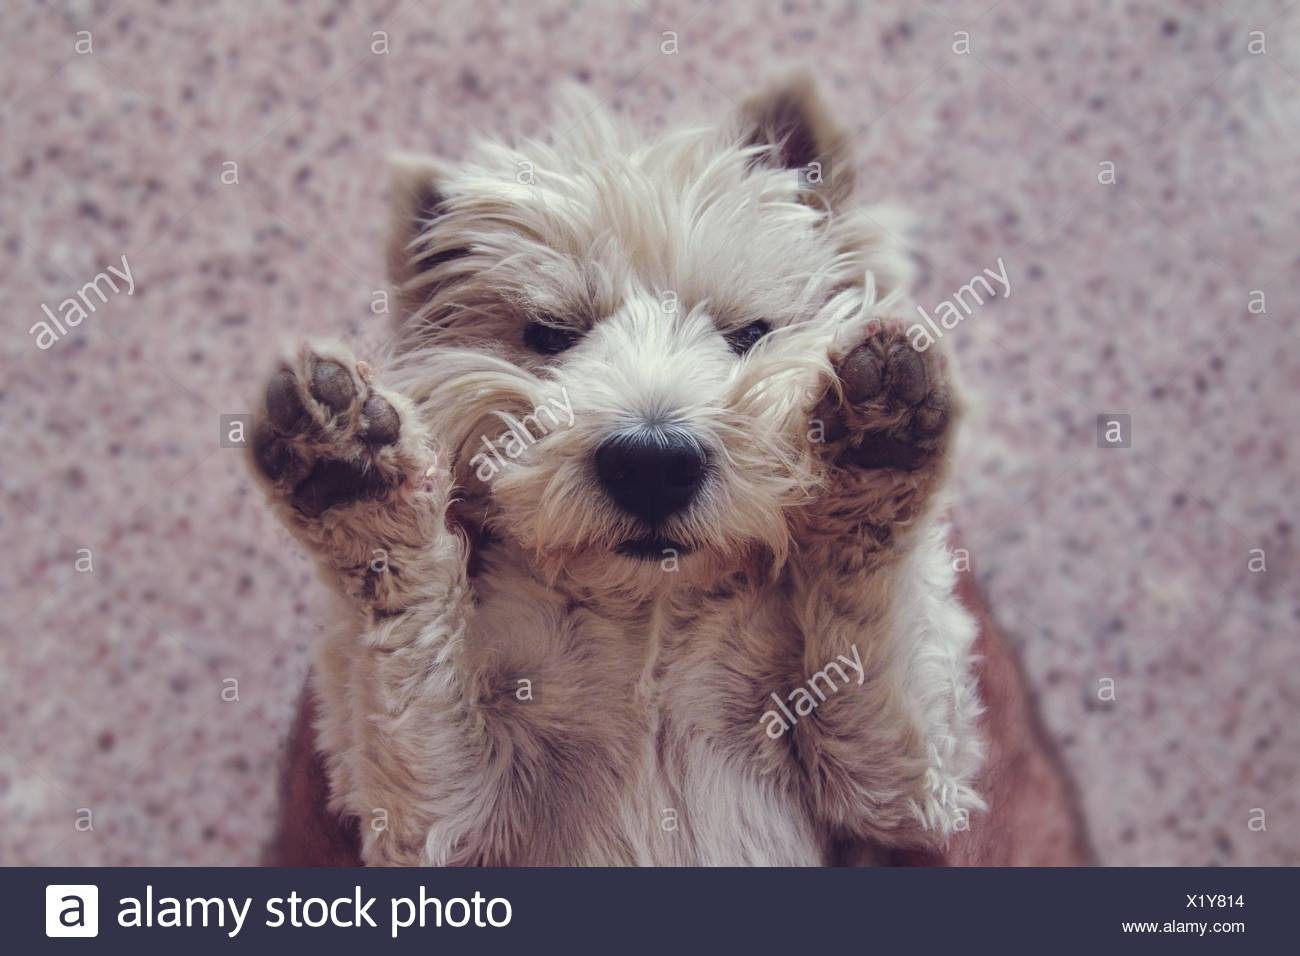 Fluffy Dog Sand With Paws Raised - Stock Image